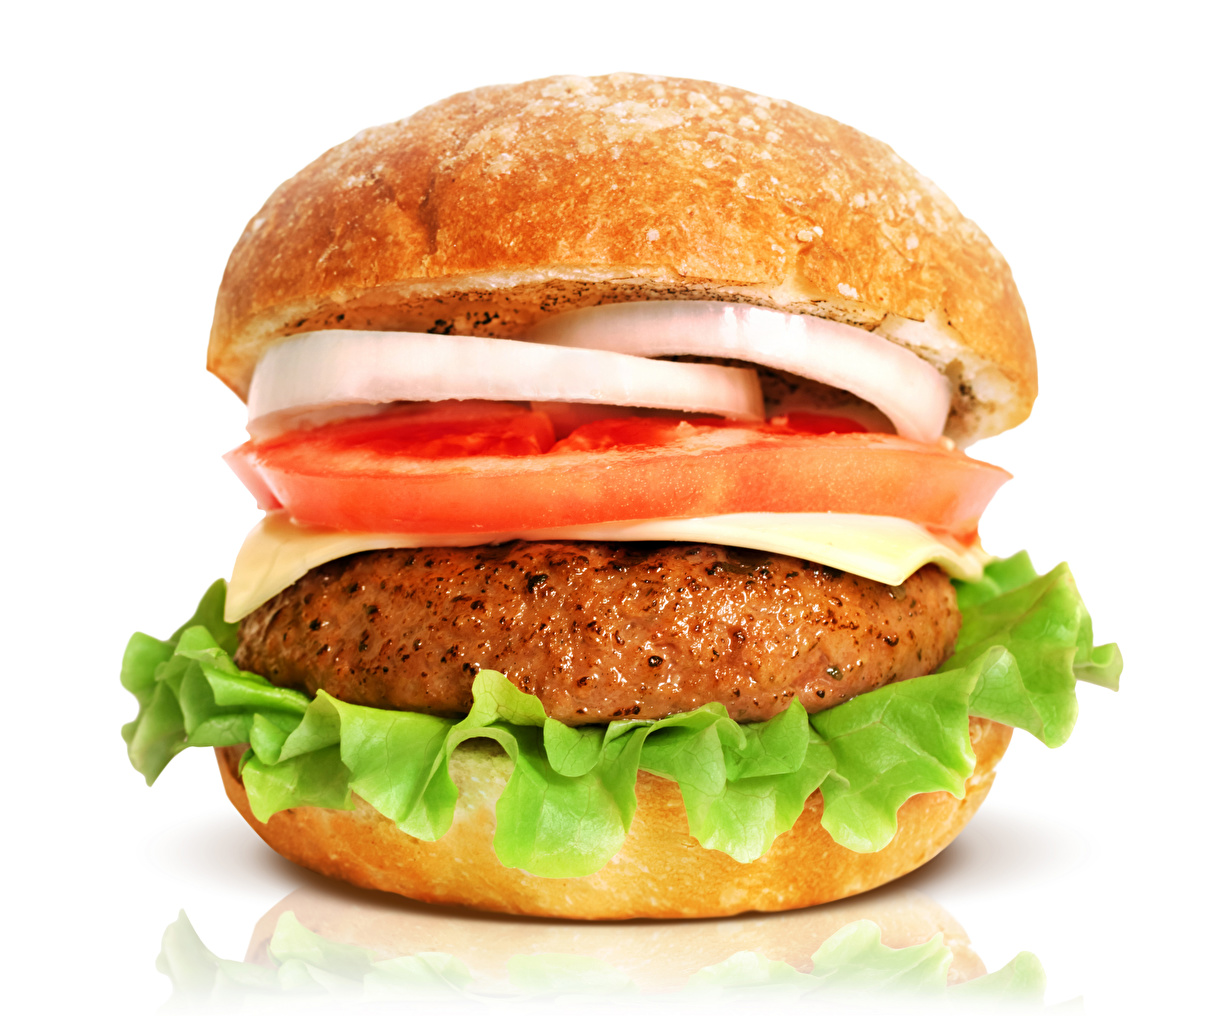 Pictures Hamburger Buns Fast food Food Vegetables Closeup Meat products White background